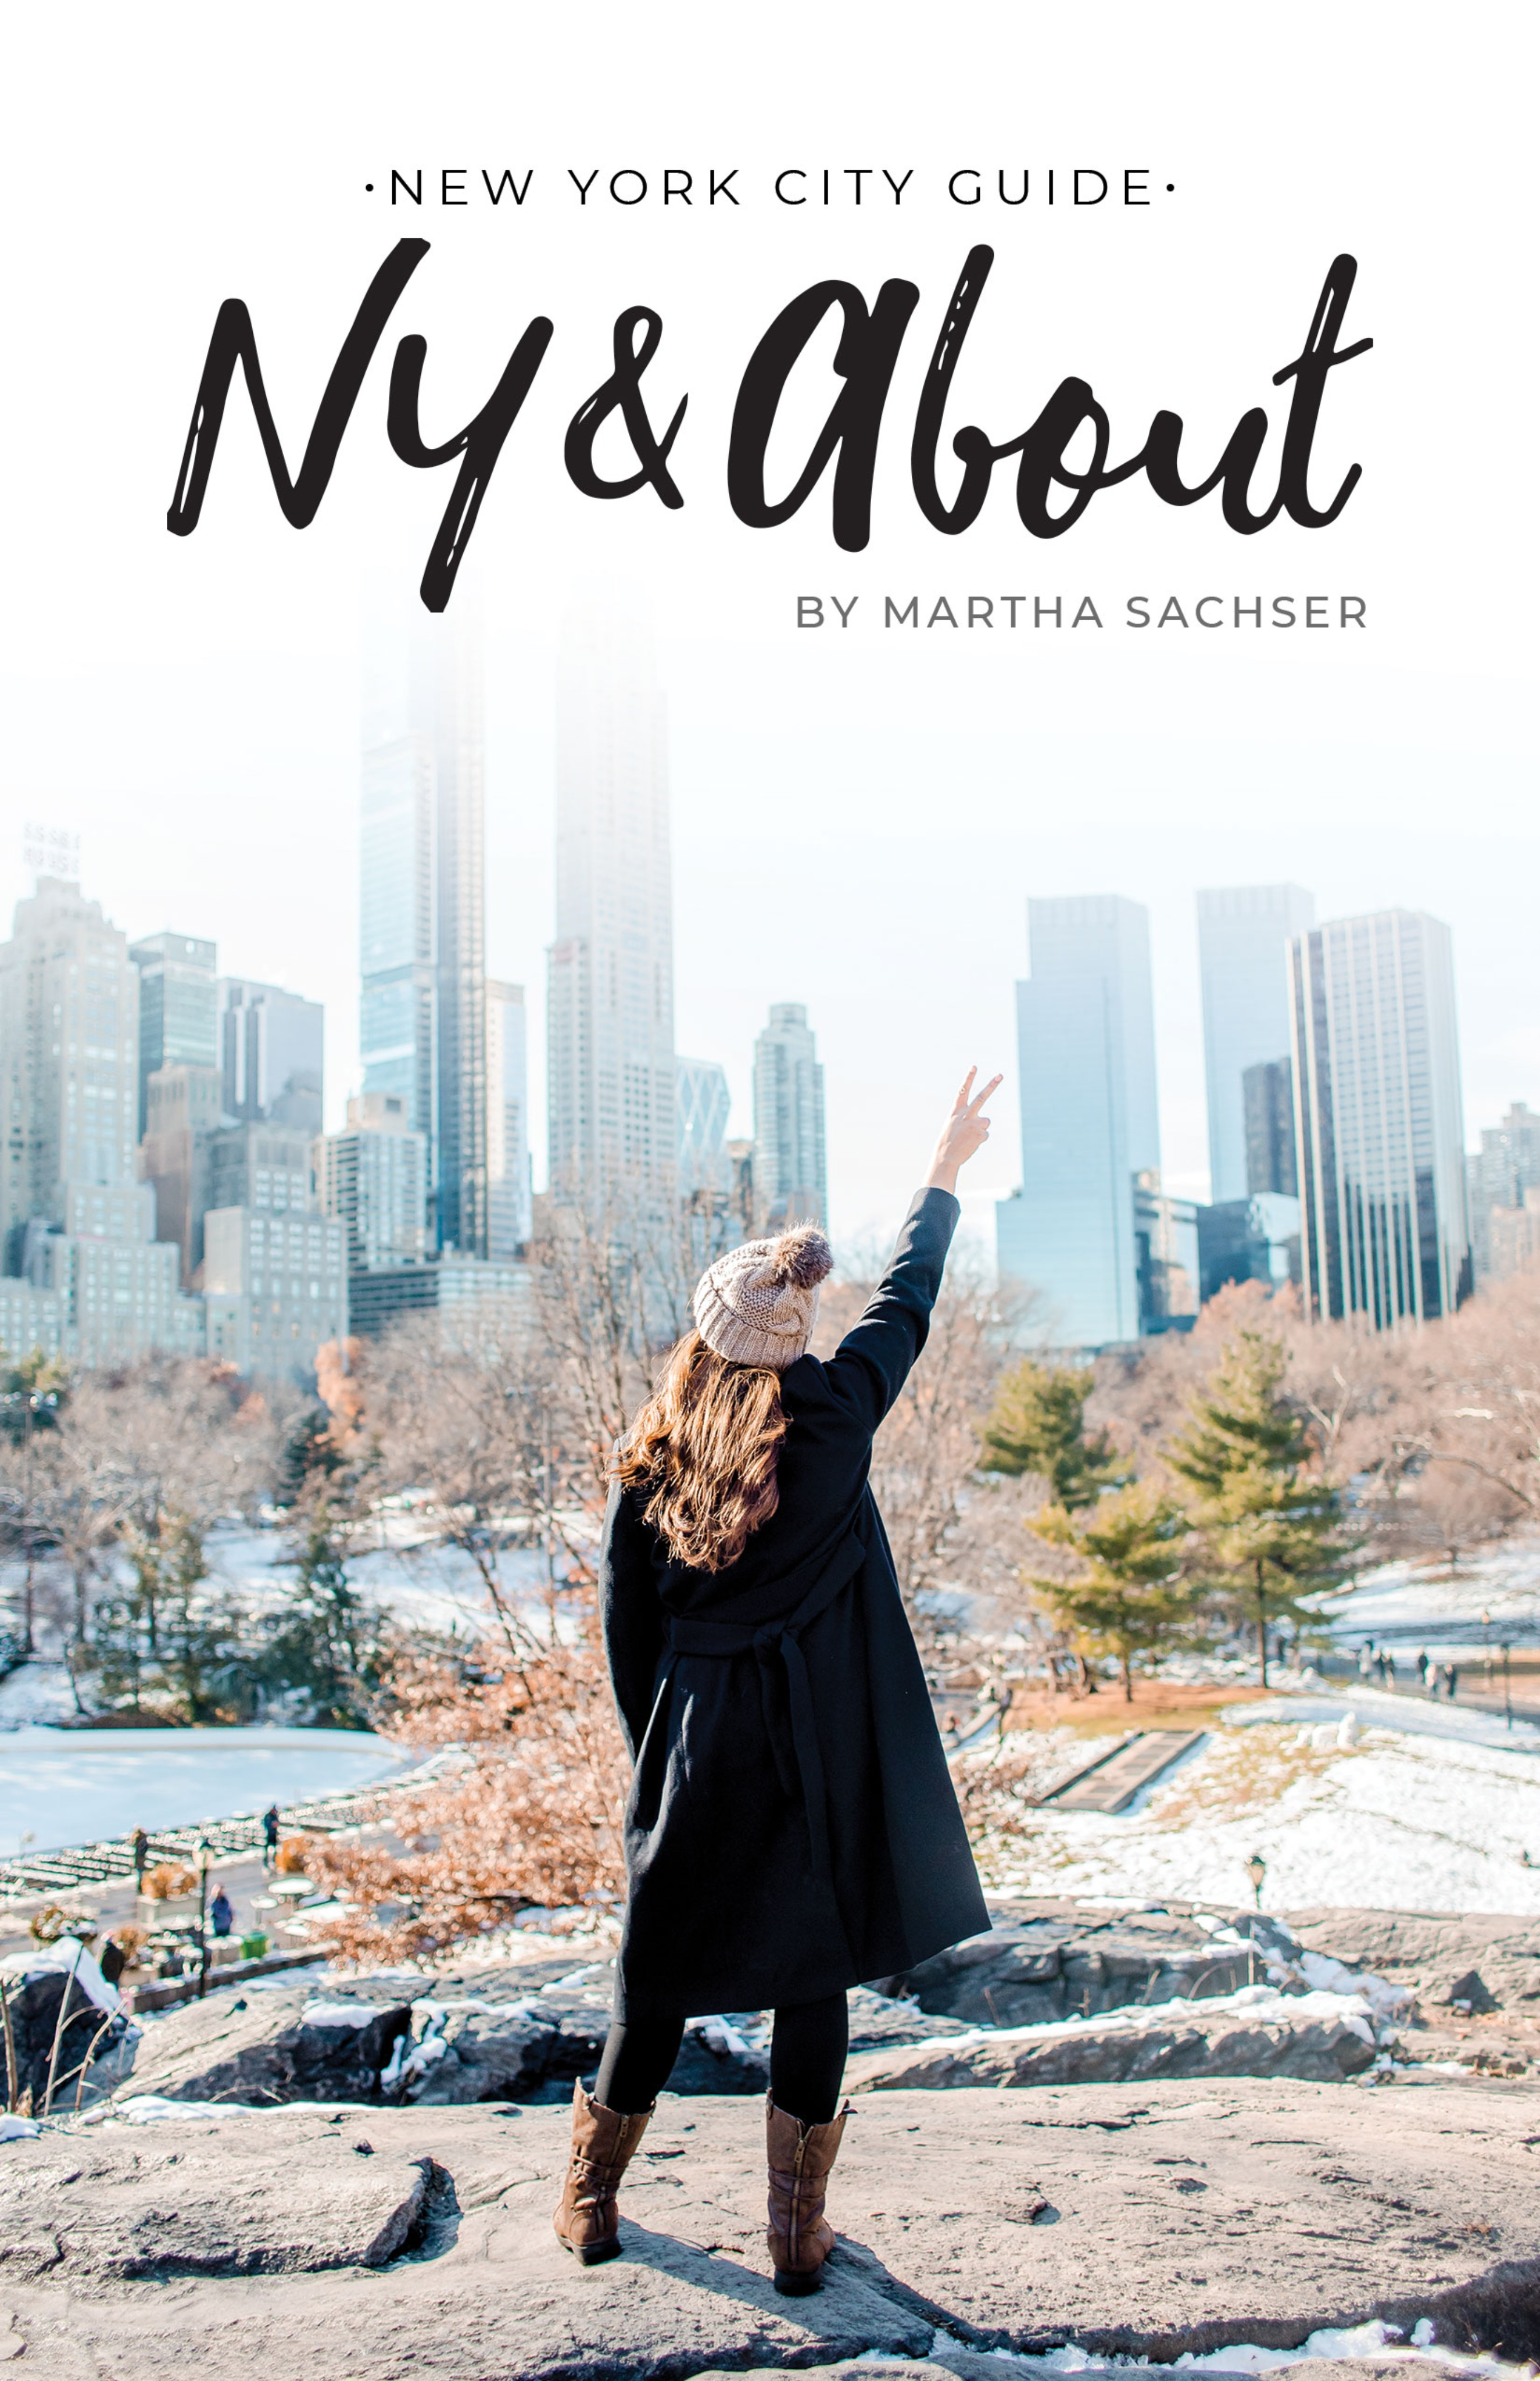 New York City Guide NY & About by Martha Sachser (English e-Book)